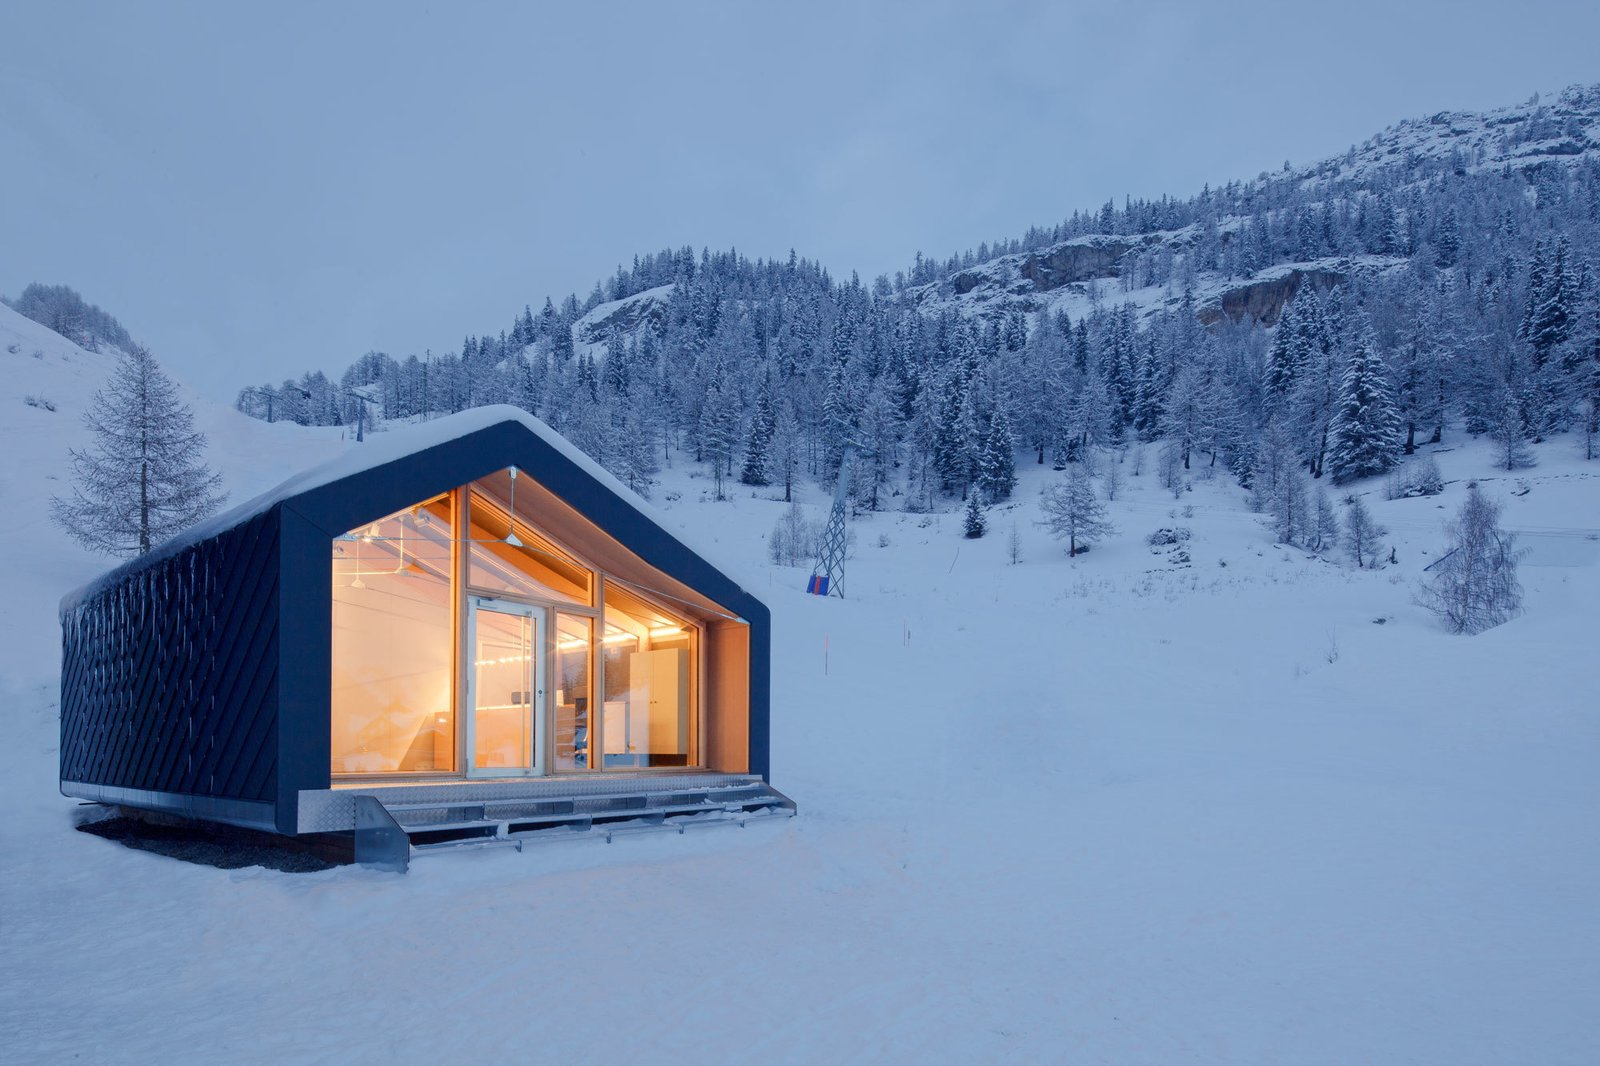 Exterior, Cabin Building Type, House Building Type, Prefab Building Type, and Glass Siding Material #prefab #house #modern #architecture #cabin #snow #smallspaces   Outdoors